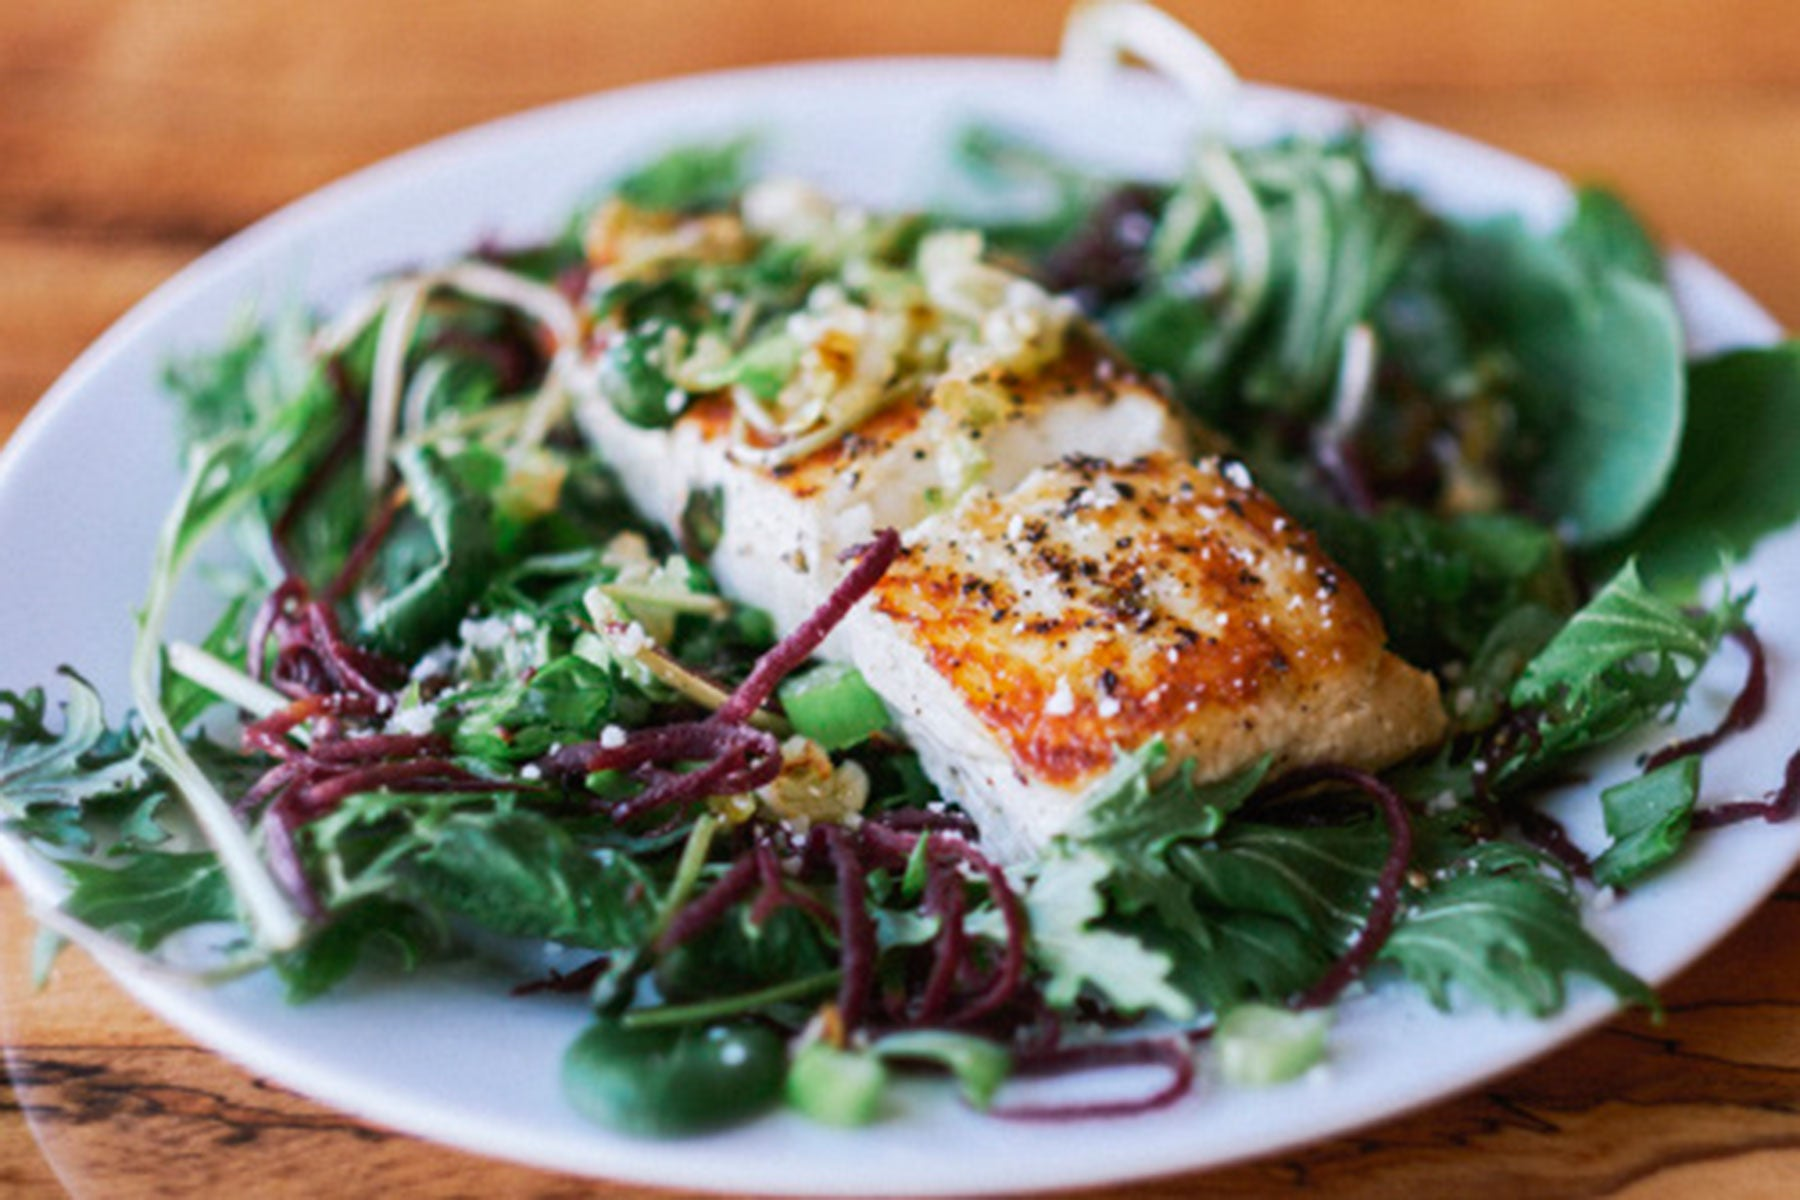 Craig's Halibut and Spring Greens Recipe